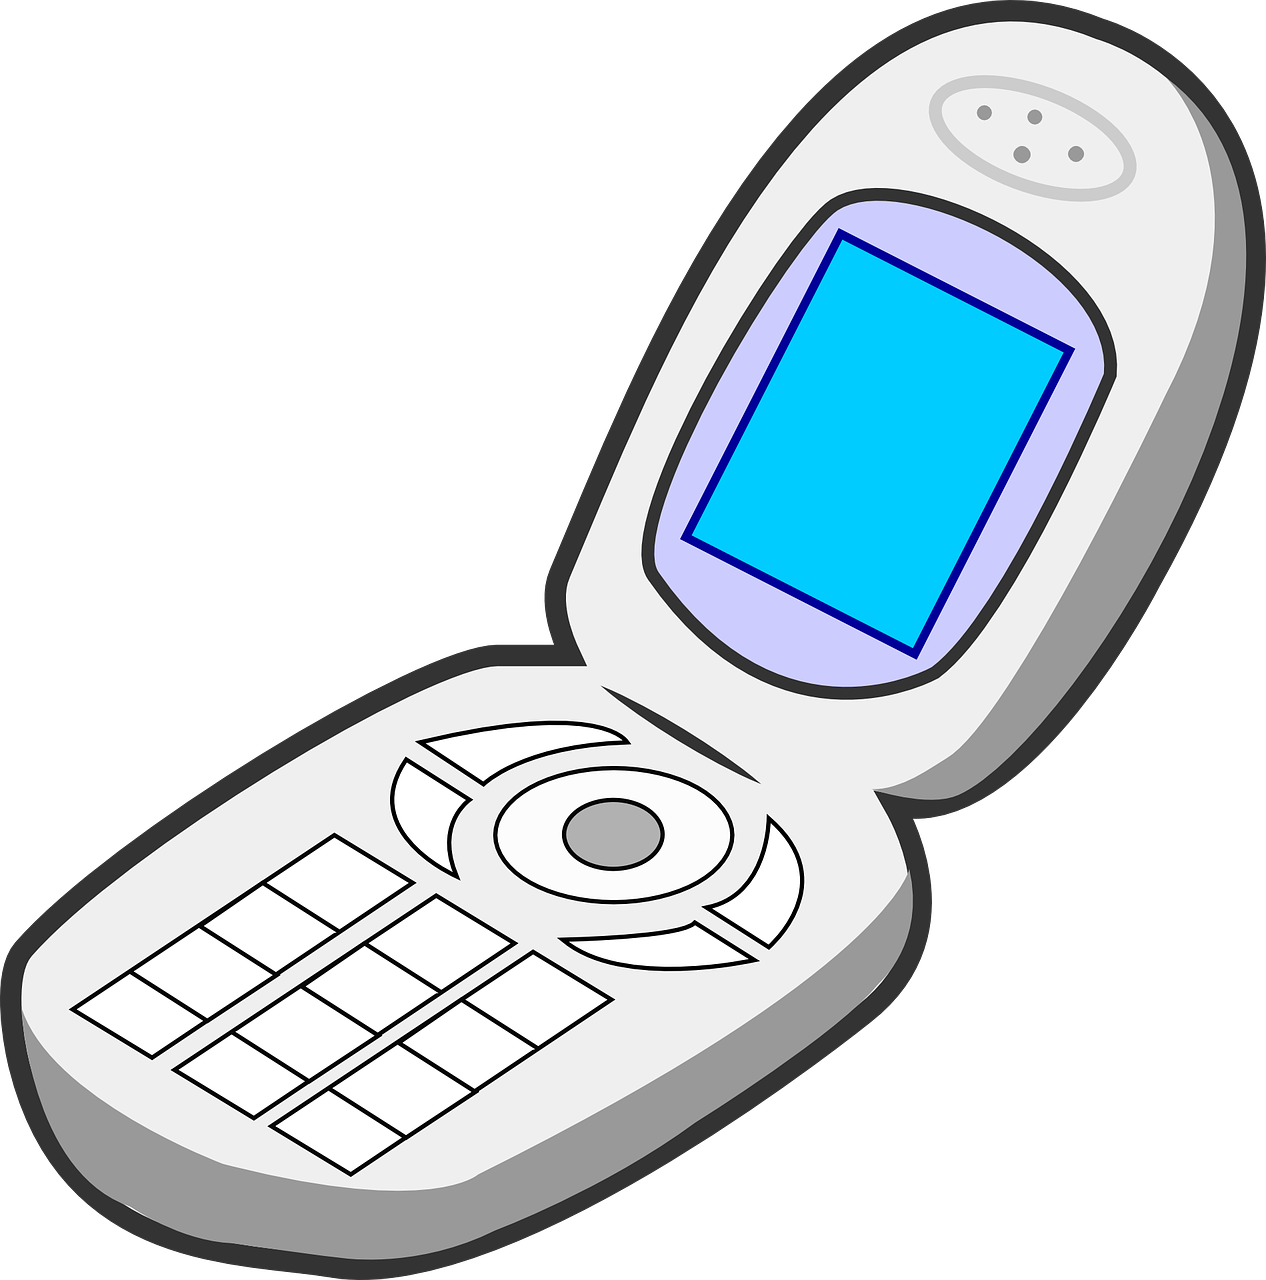 Cellphone Technological Transparent & PNG Clipart Free Download - YA